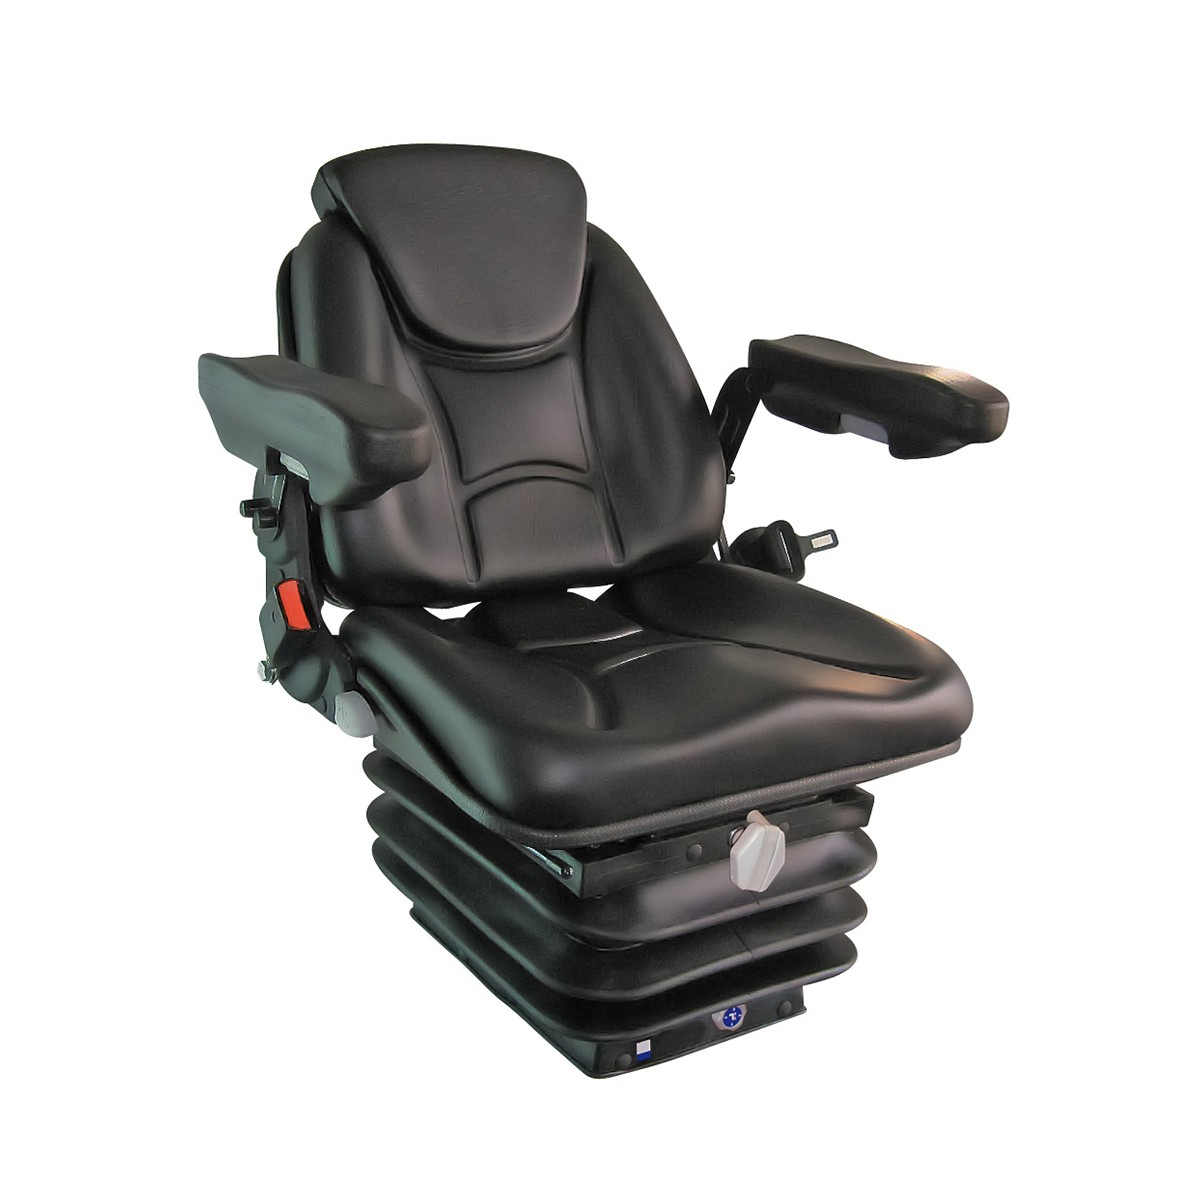 Asientos Para Tractores Asiento Tractor Rm62 210 N Brz Cbz Ctr Pvc Negro